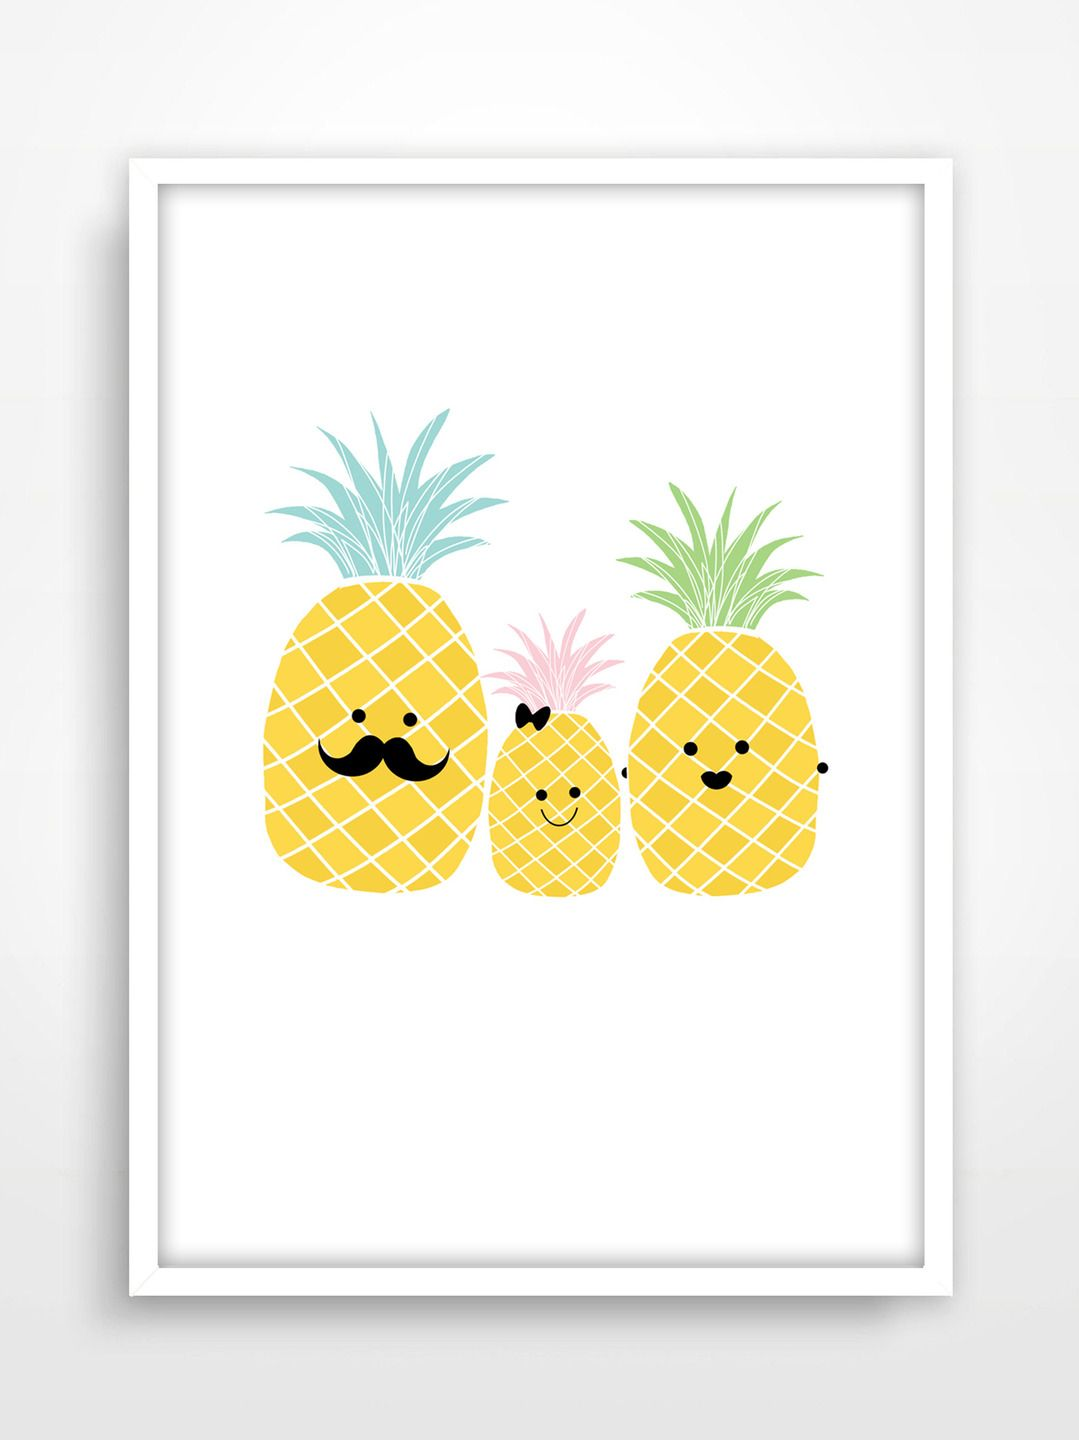 affiche poster print famille ananas pineapple chambre d 39 enfant de b b par pagaille et. Black Bedroom Furniture Sets. Home Design Ideas